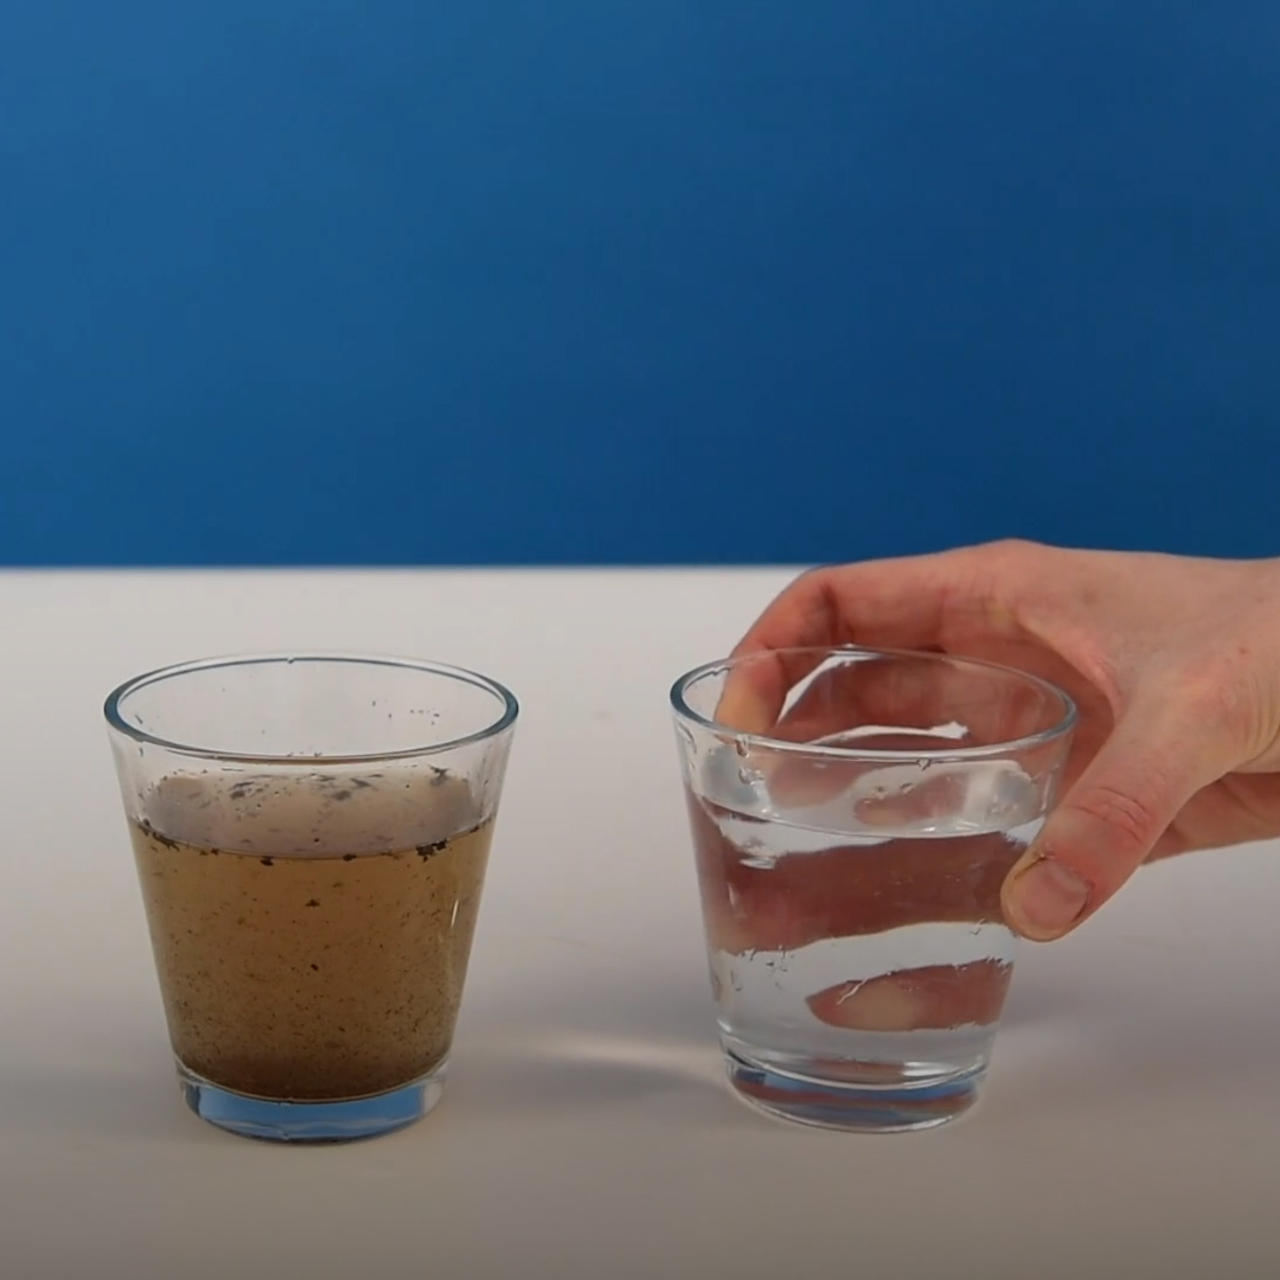 Prototype water filter could help bring clean water to people who need it